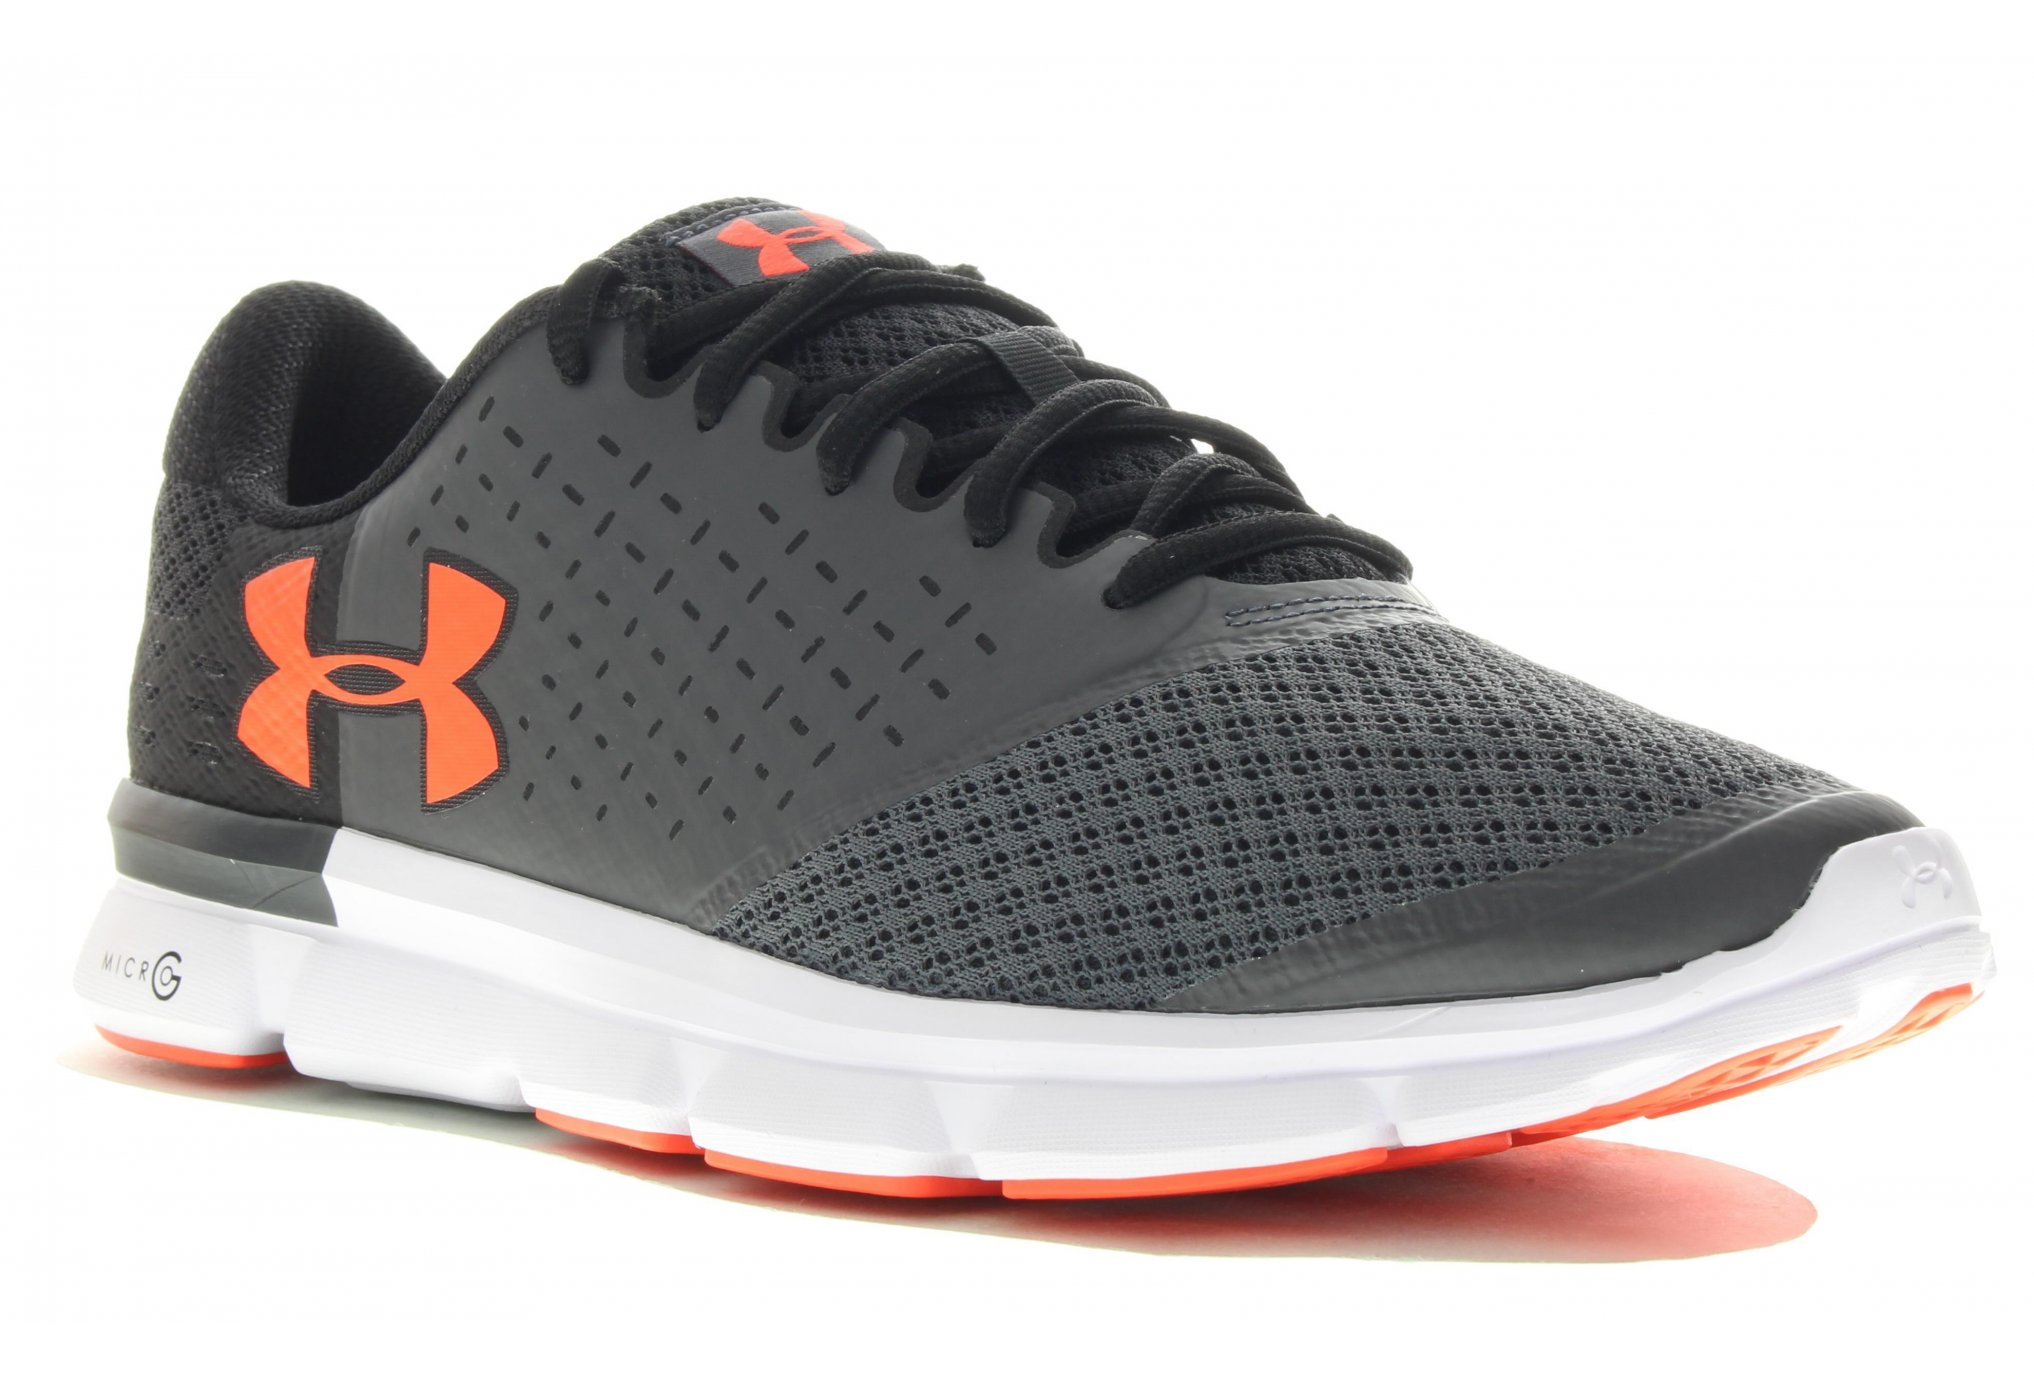 2 Chaussures Speed Pas Swift Cher Homme G Micro Under M Armour tqxSzX6Cw